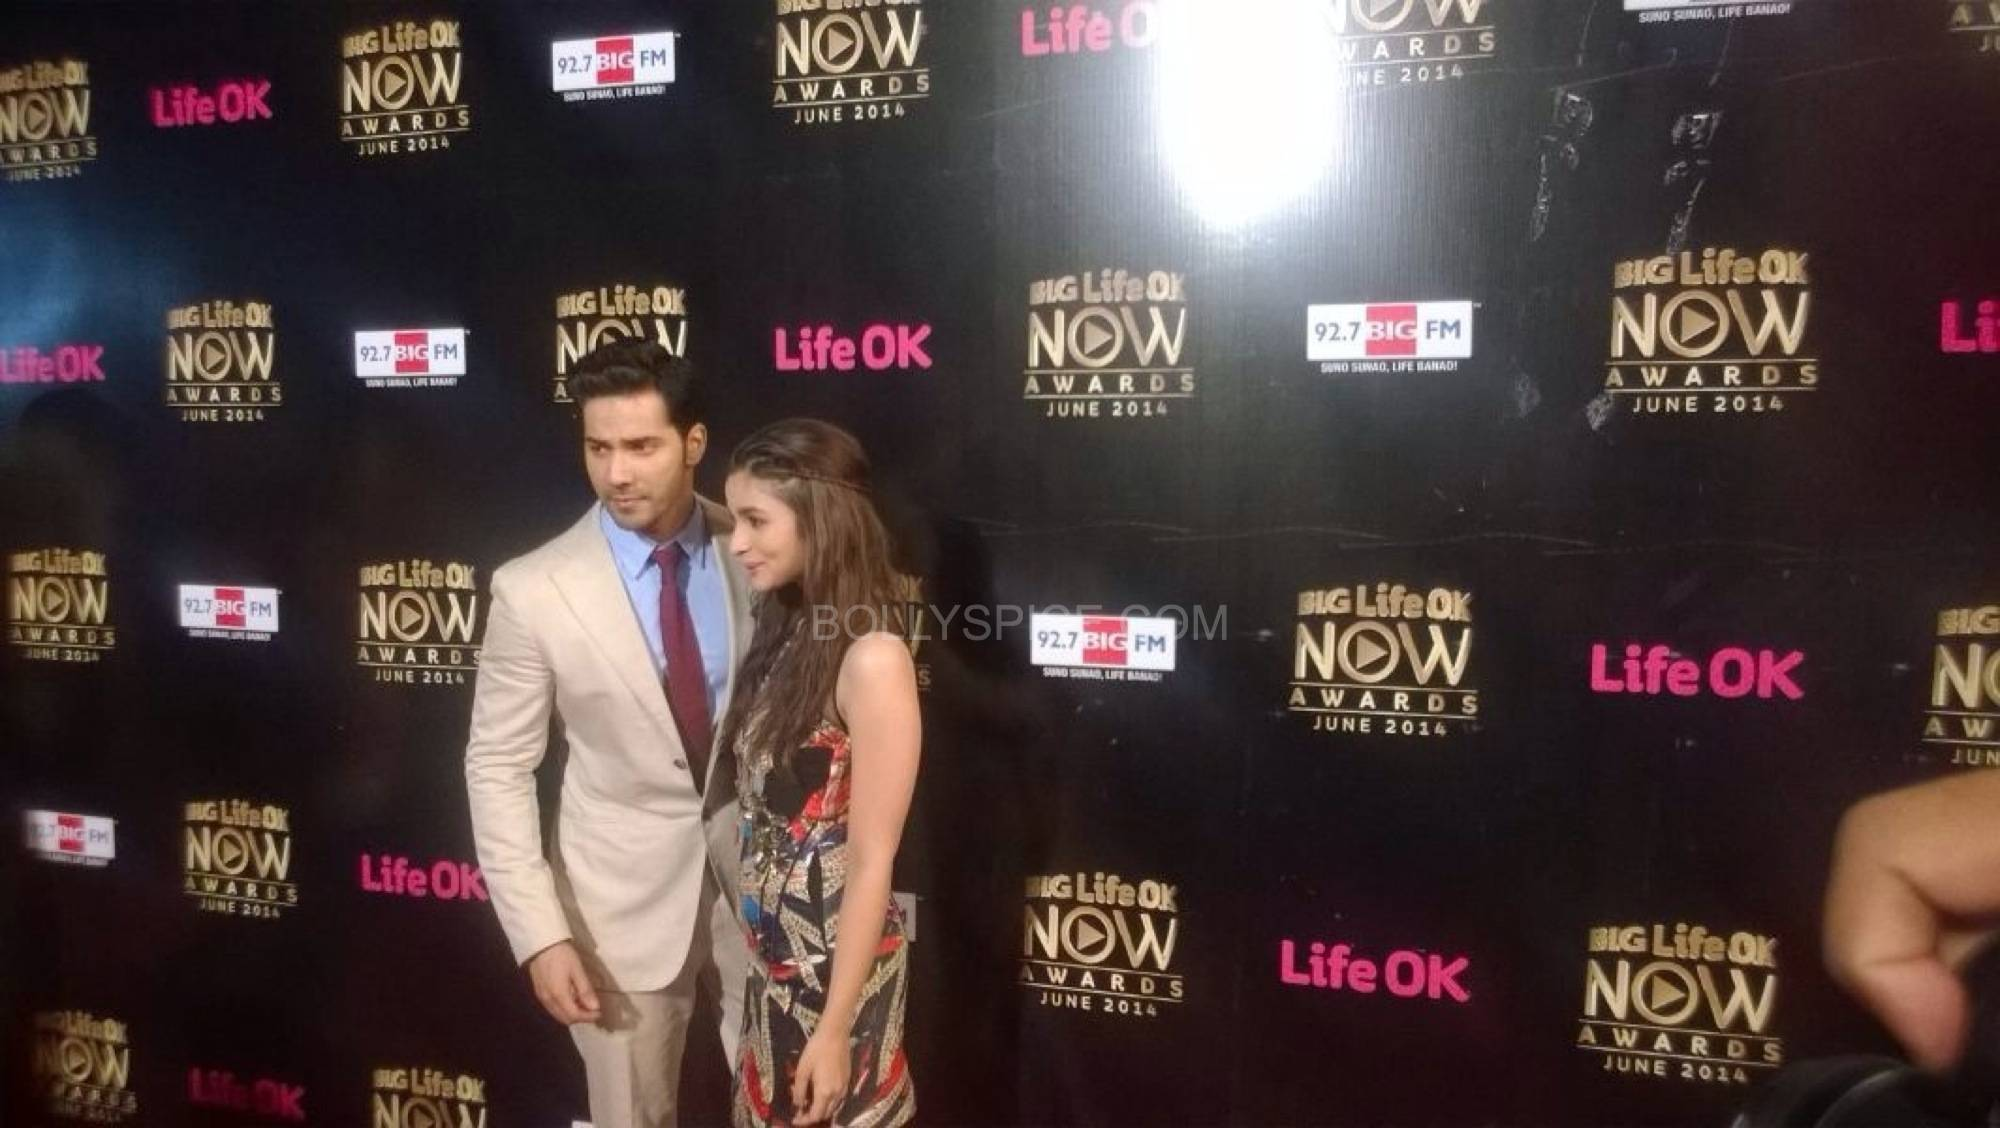 varunaliaokawards1 Humpty Sharma and his Dulhaniya Set the Stage on Fire at Life OK! Awards